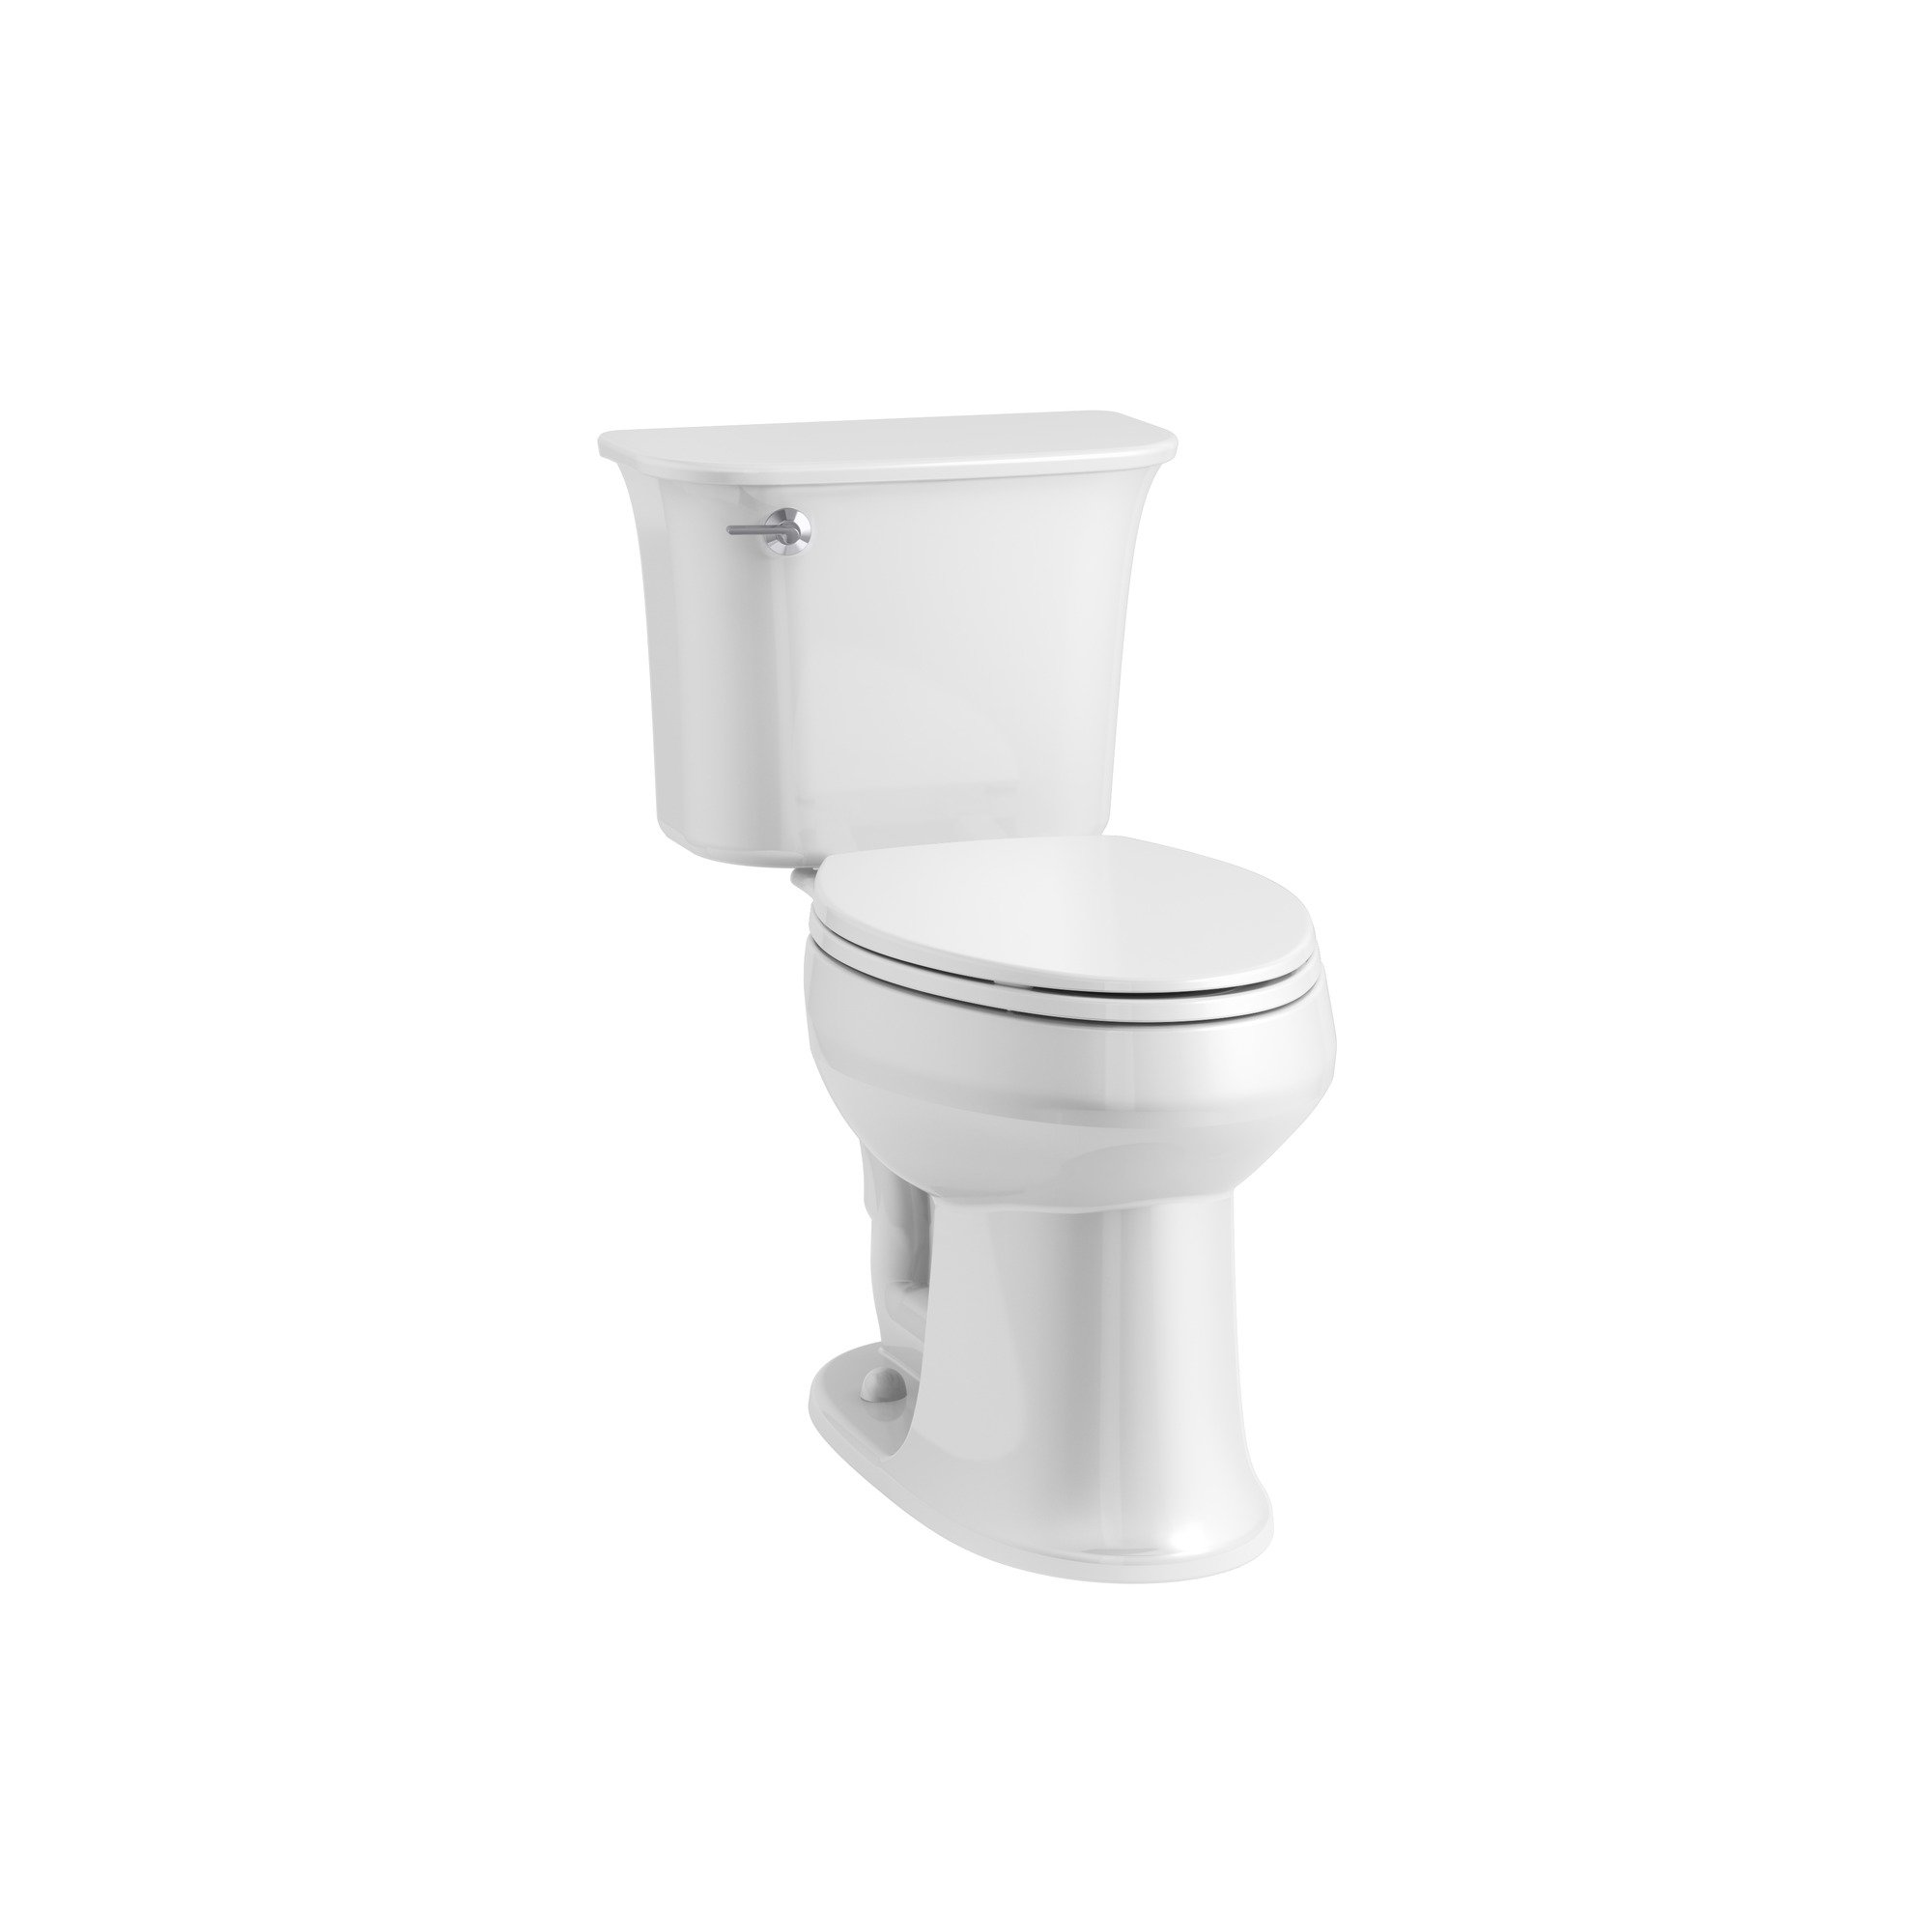 Kohler K 4774 0 Brevia With Quick Release Hinges Elongated